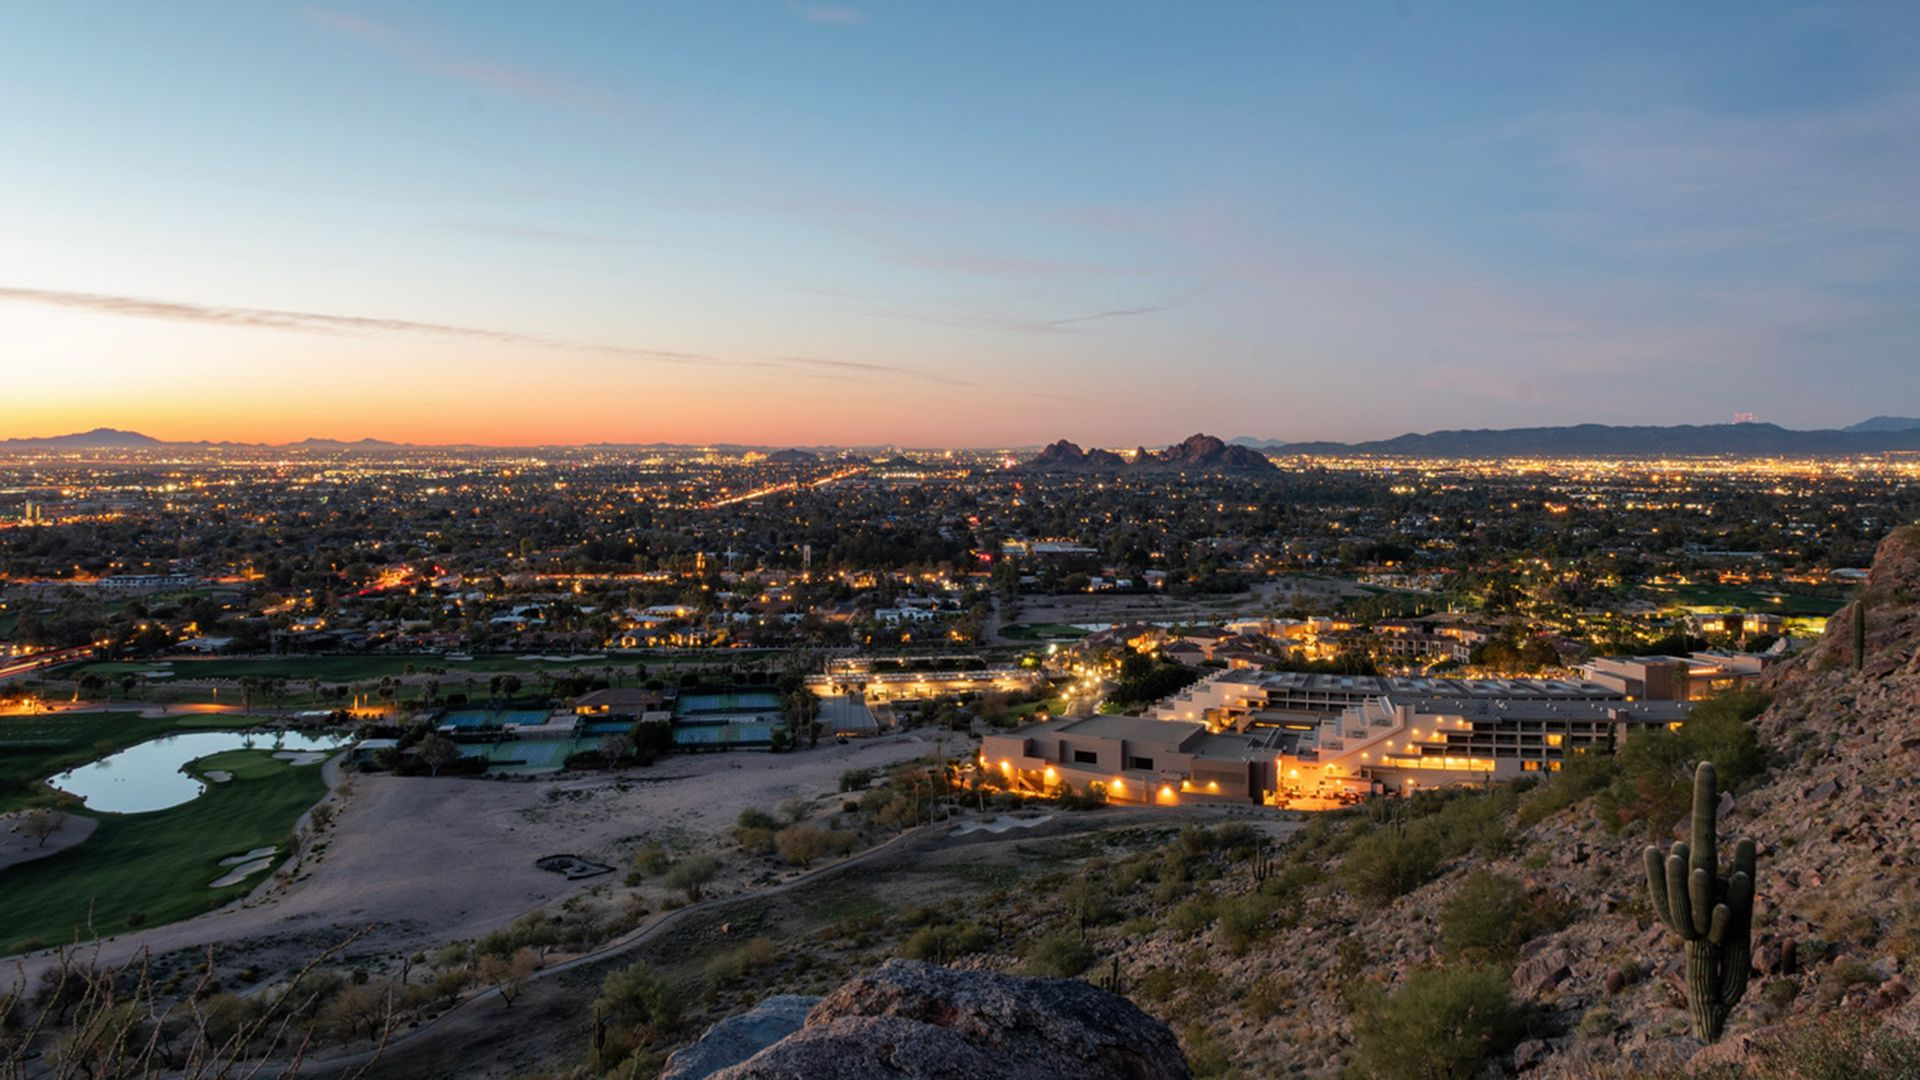 The city lights of Scottsdale and beyond.